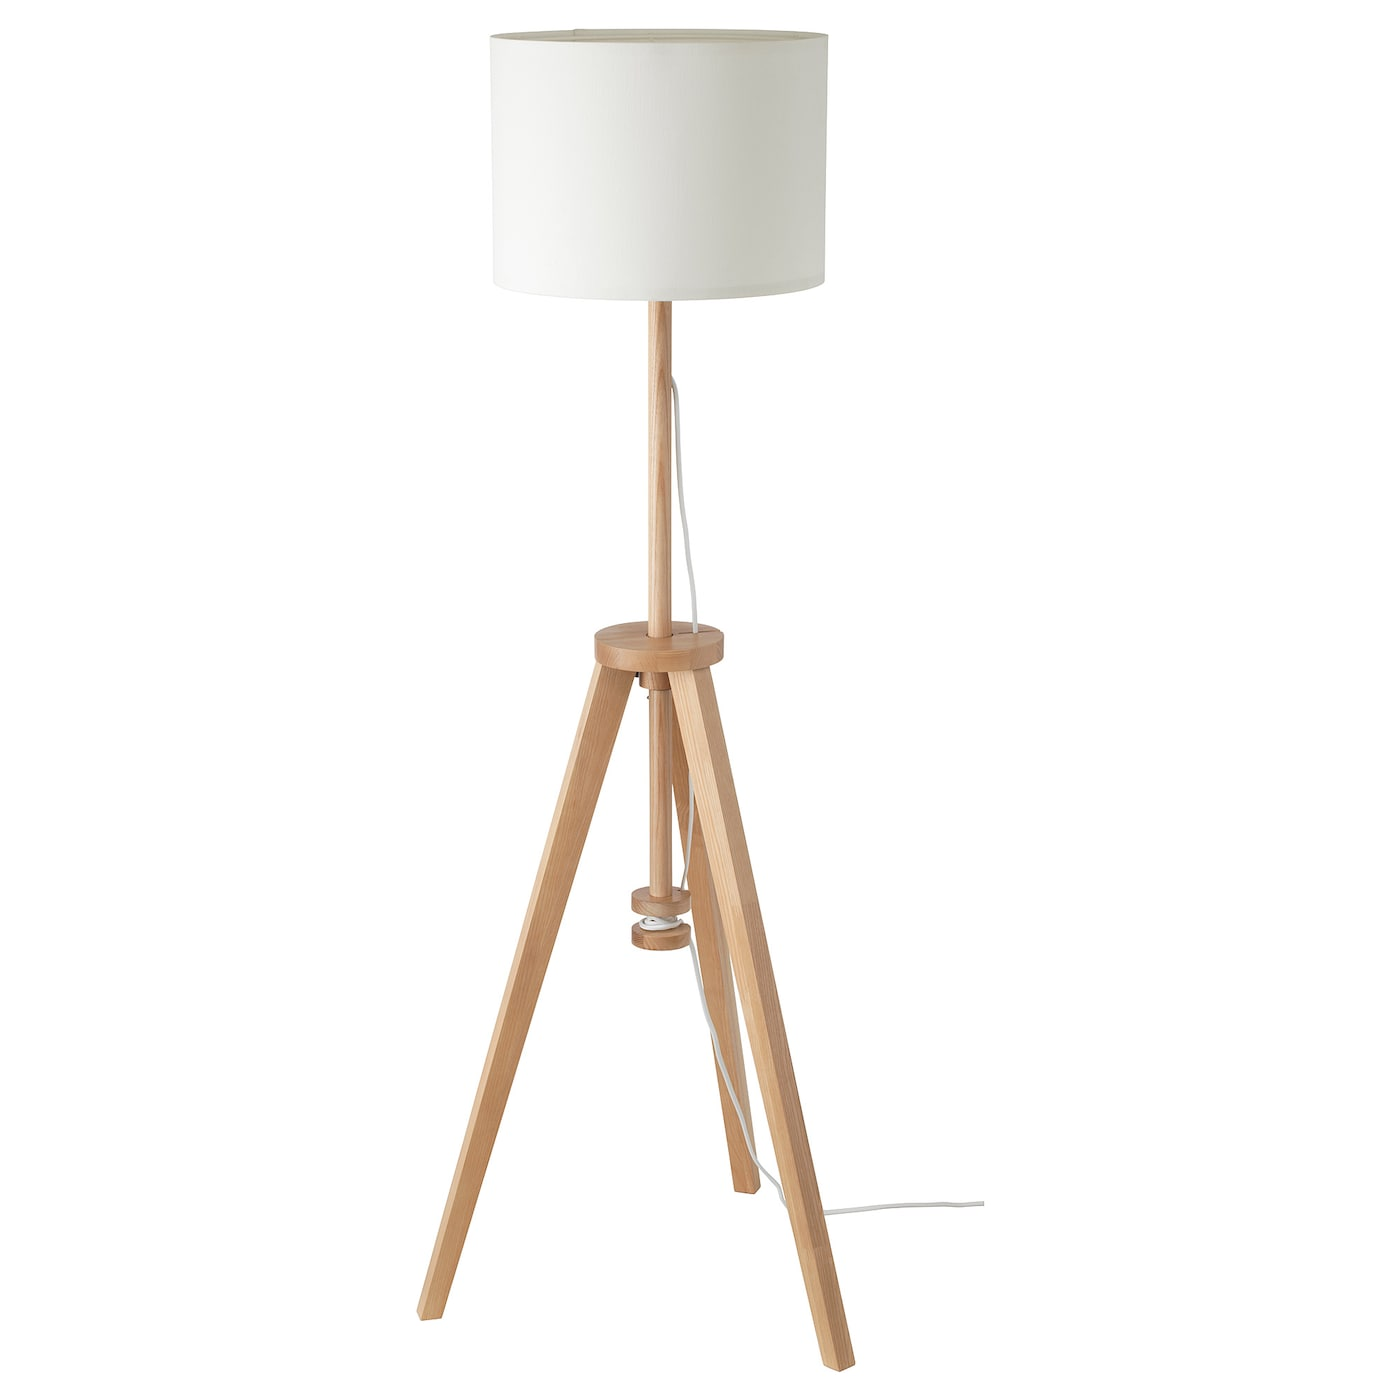 IKEA LAUTERS floor lamp The height is adjustable to suit your lighting needs.